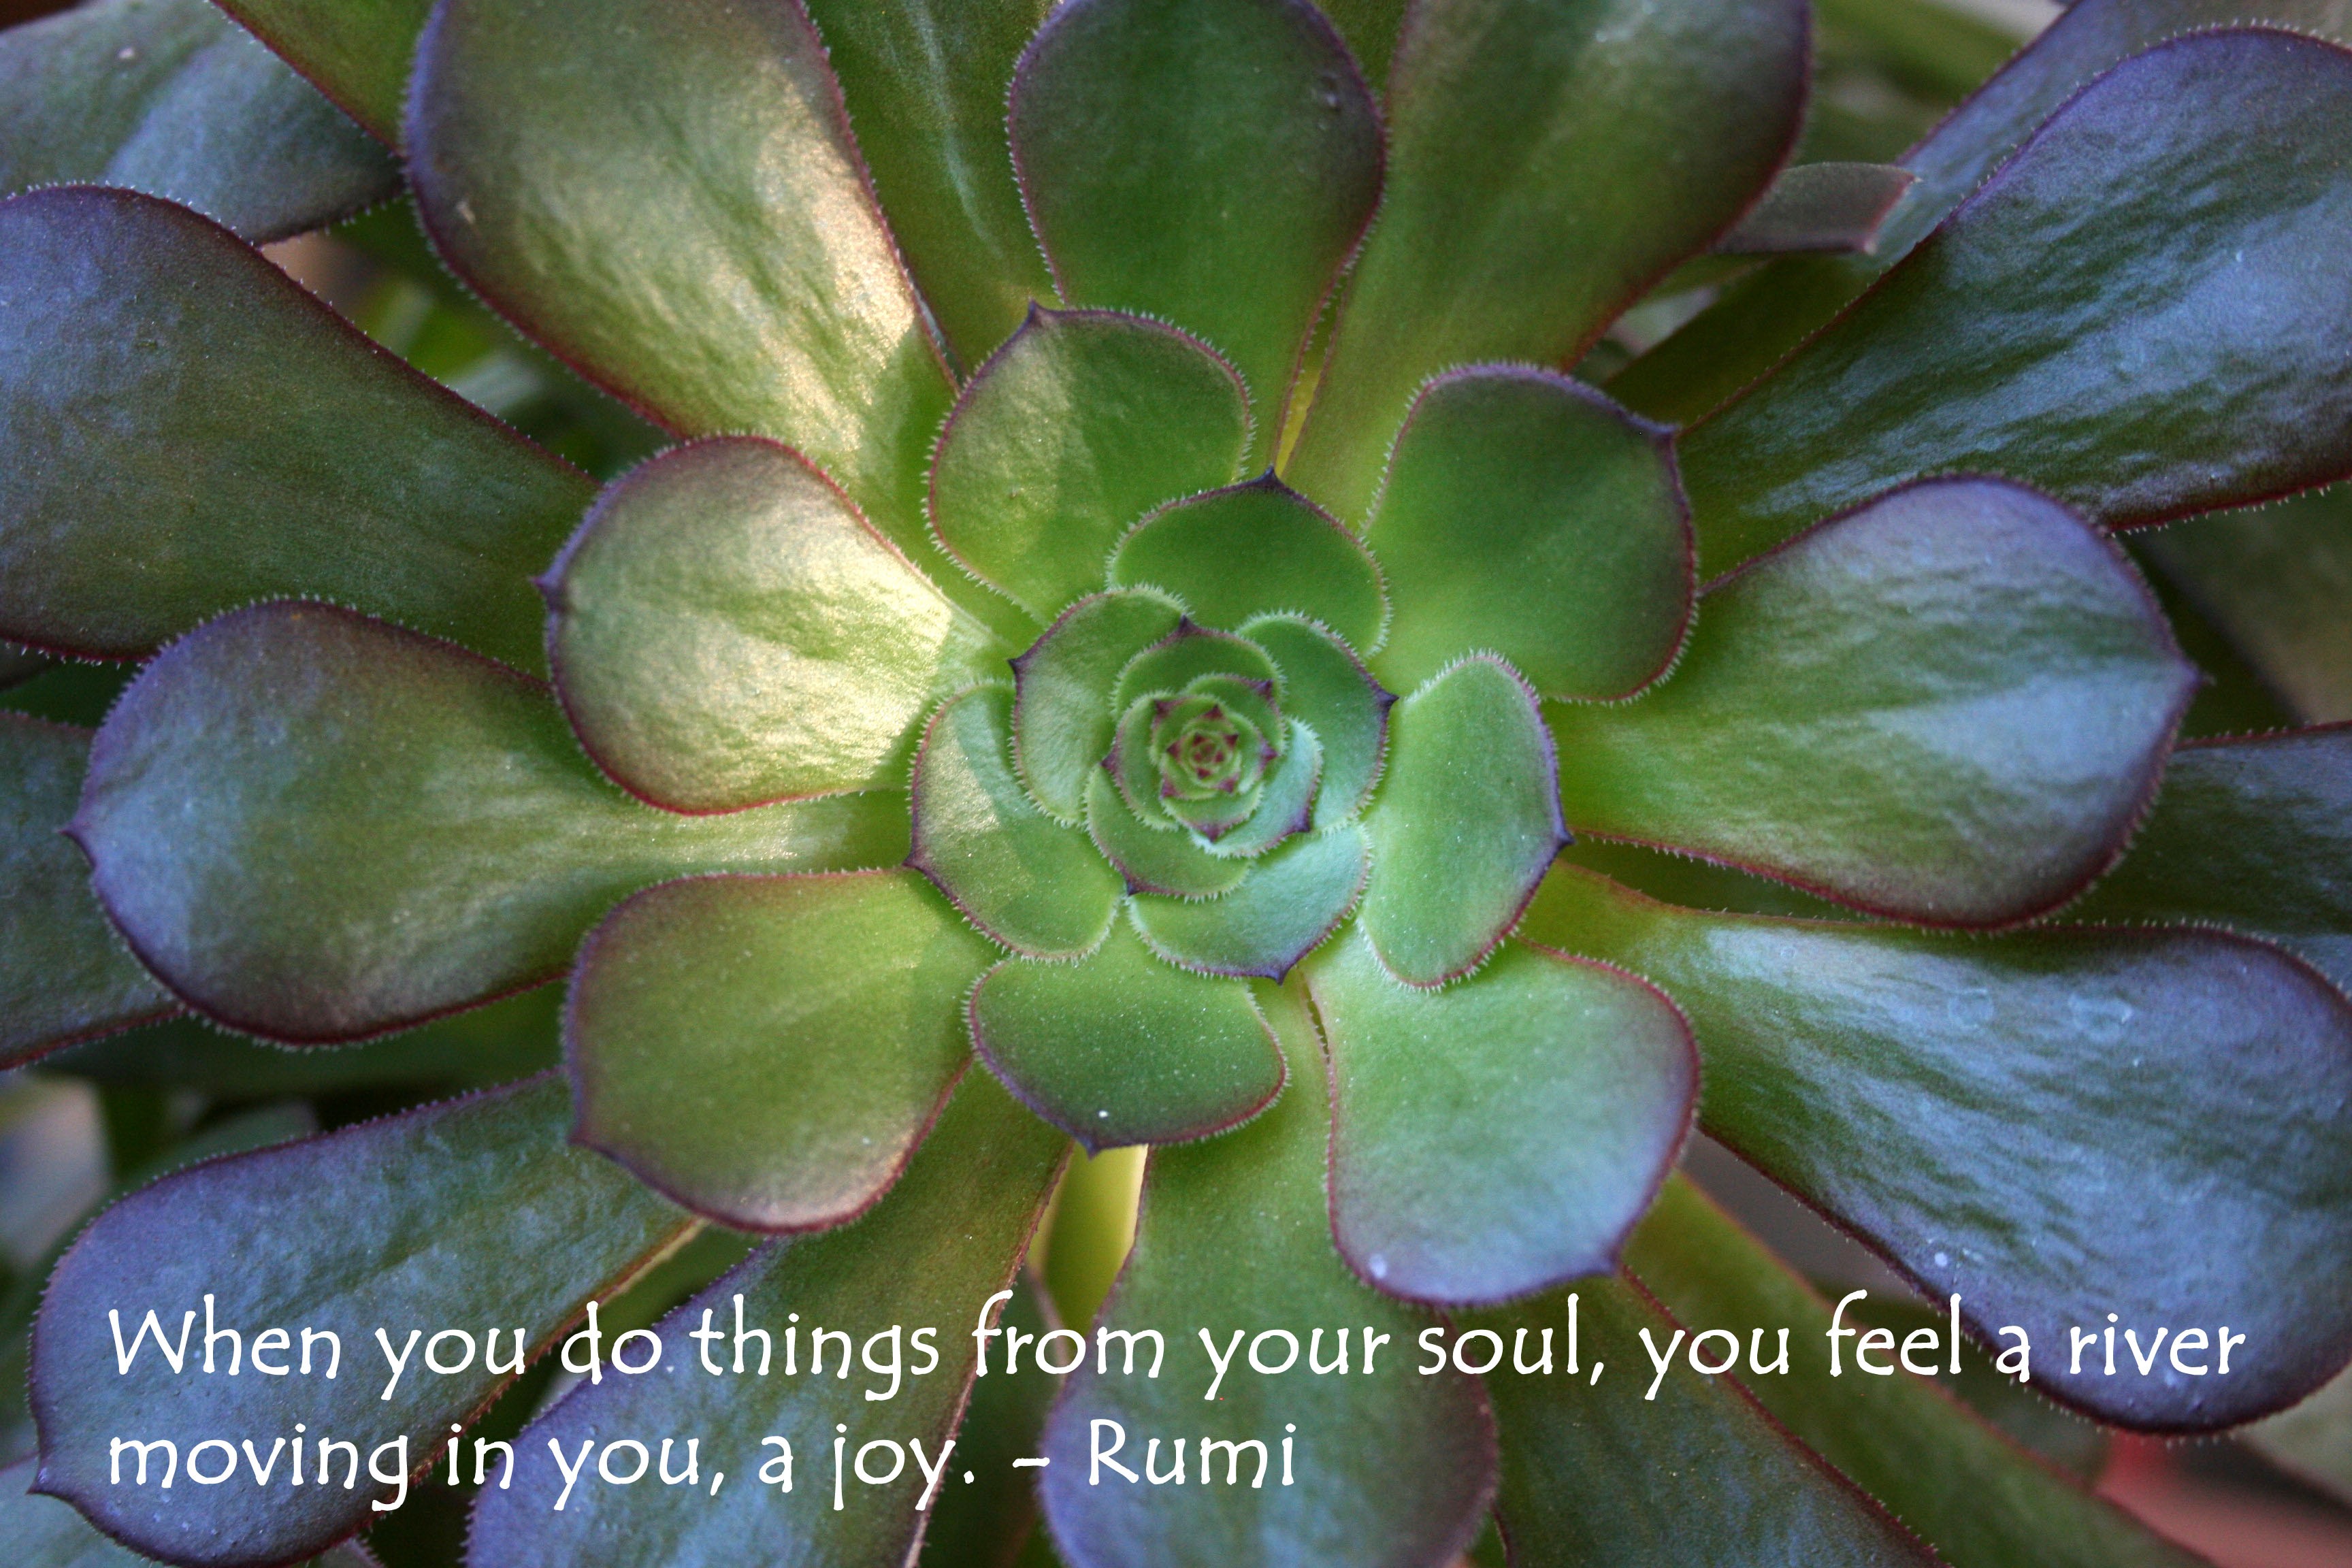 """When you do things from your soul, you feel a river moving in you, a joy."" - Rumi quote over a photo of a succulent."